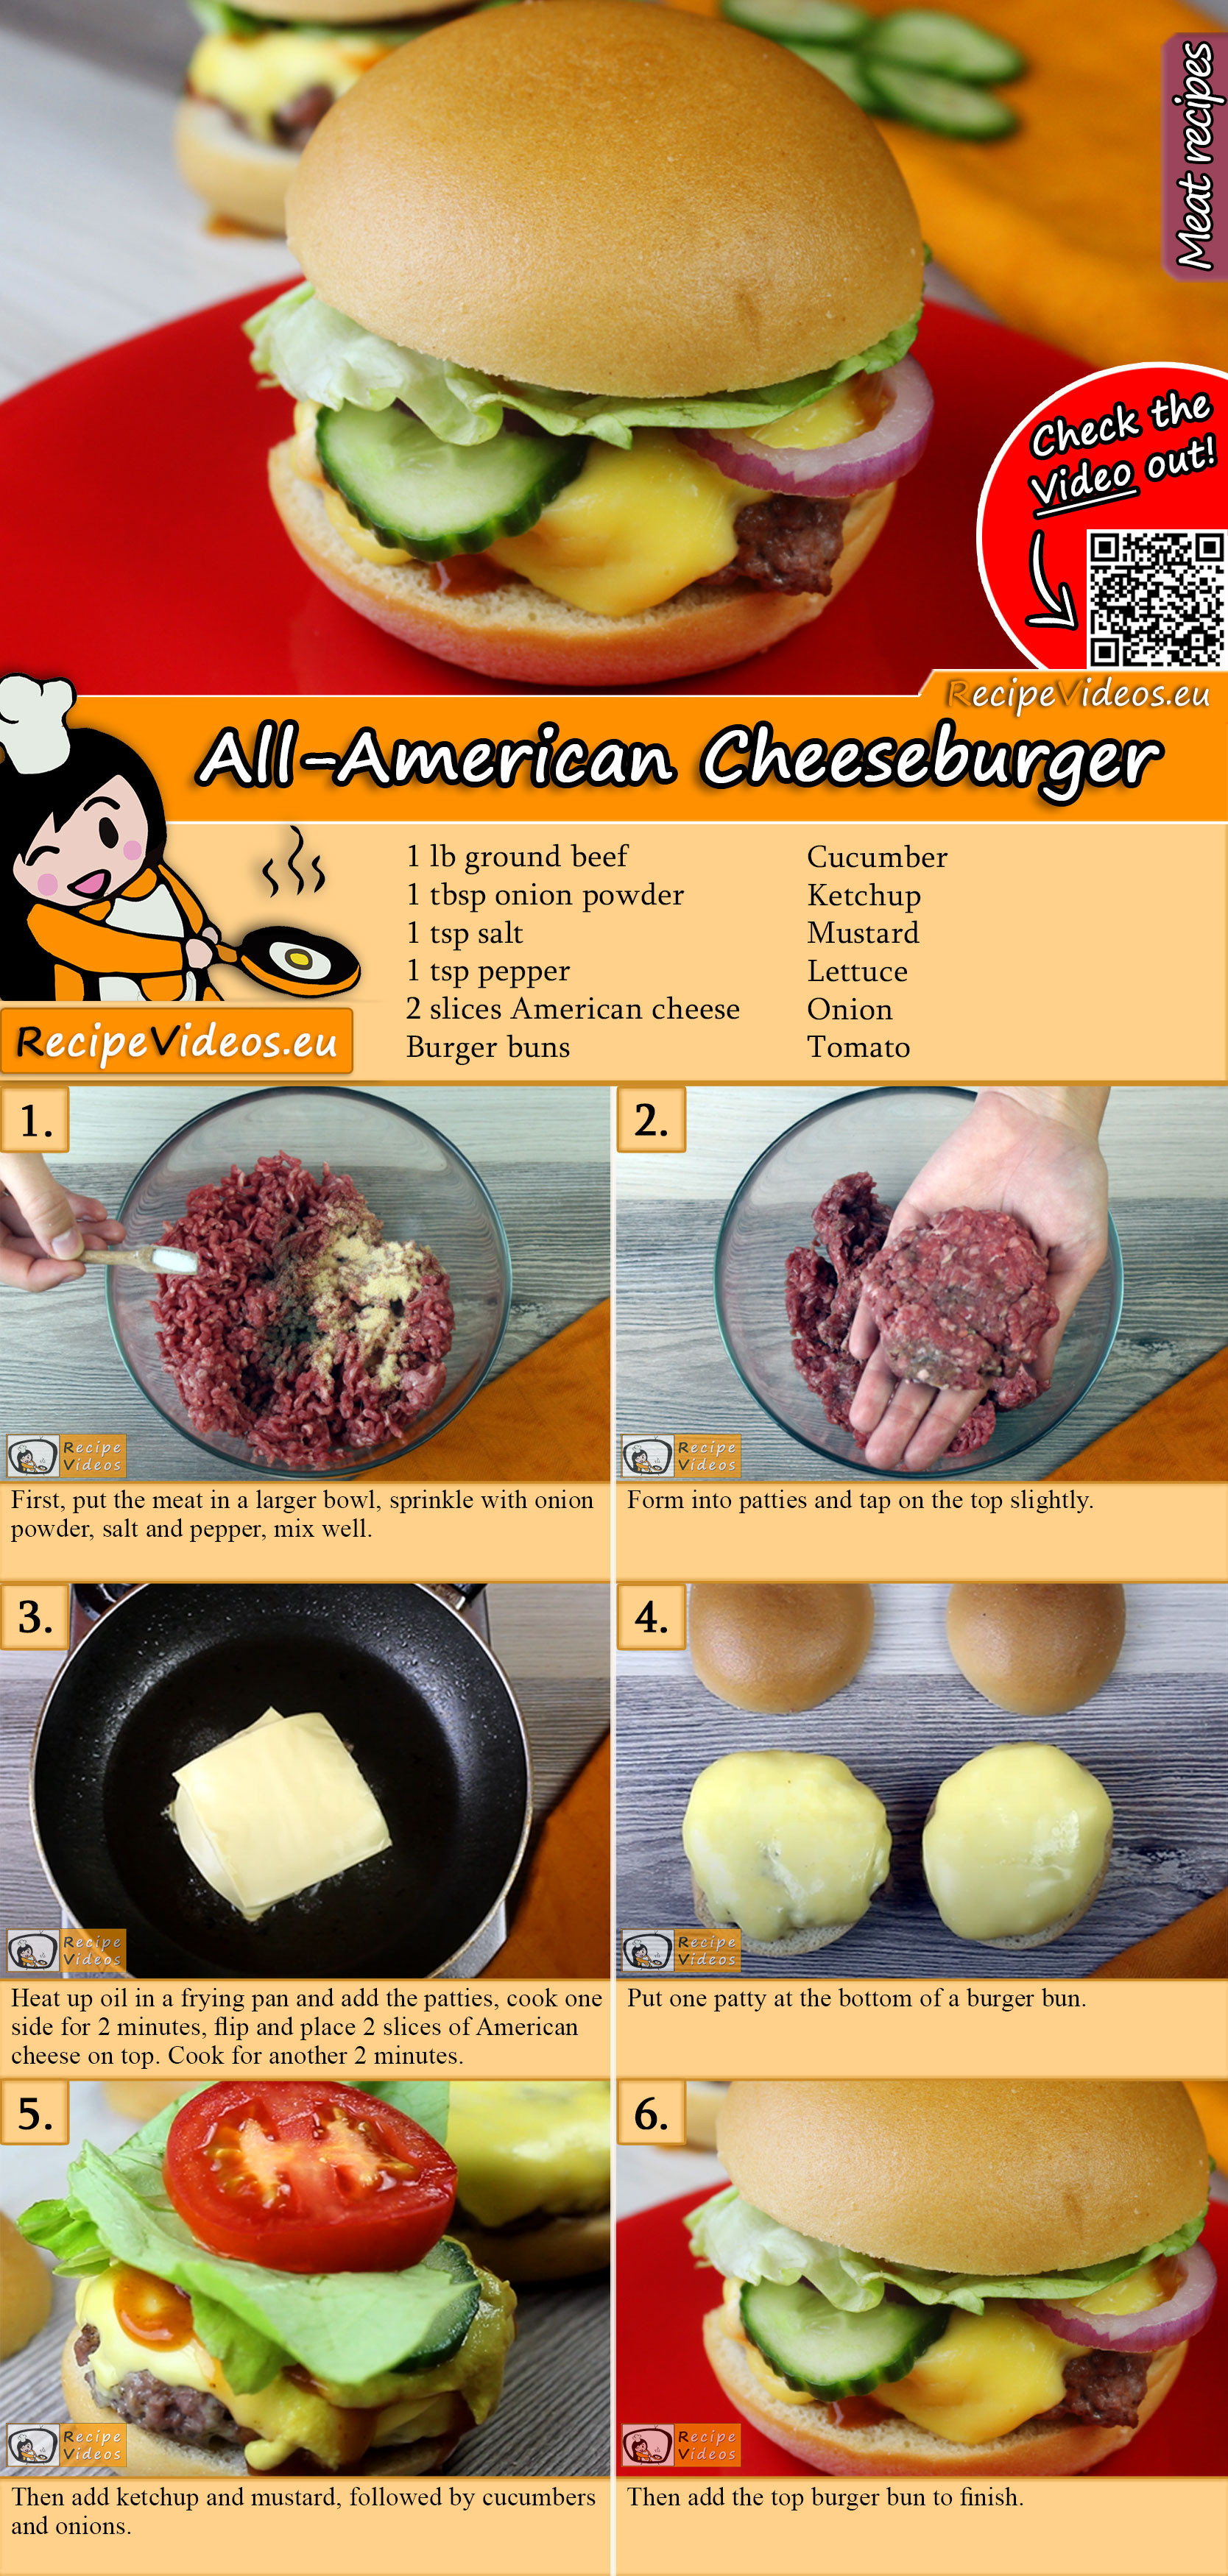 All-American Cheeseburger recipe with video